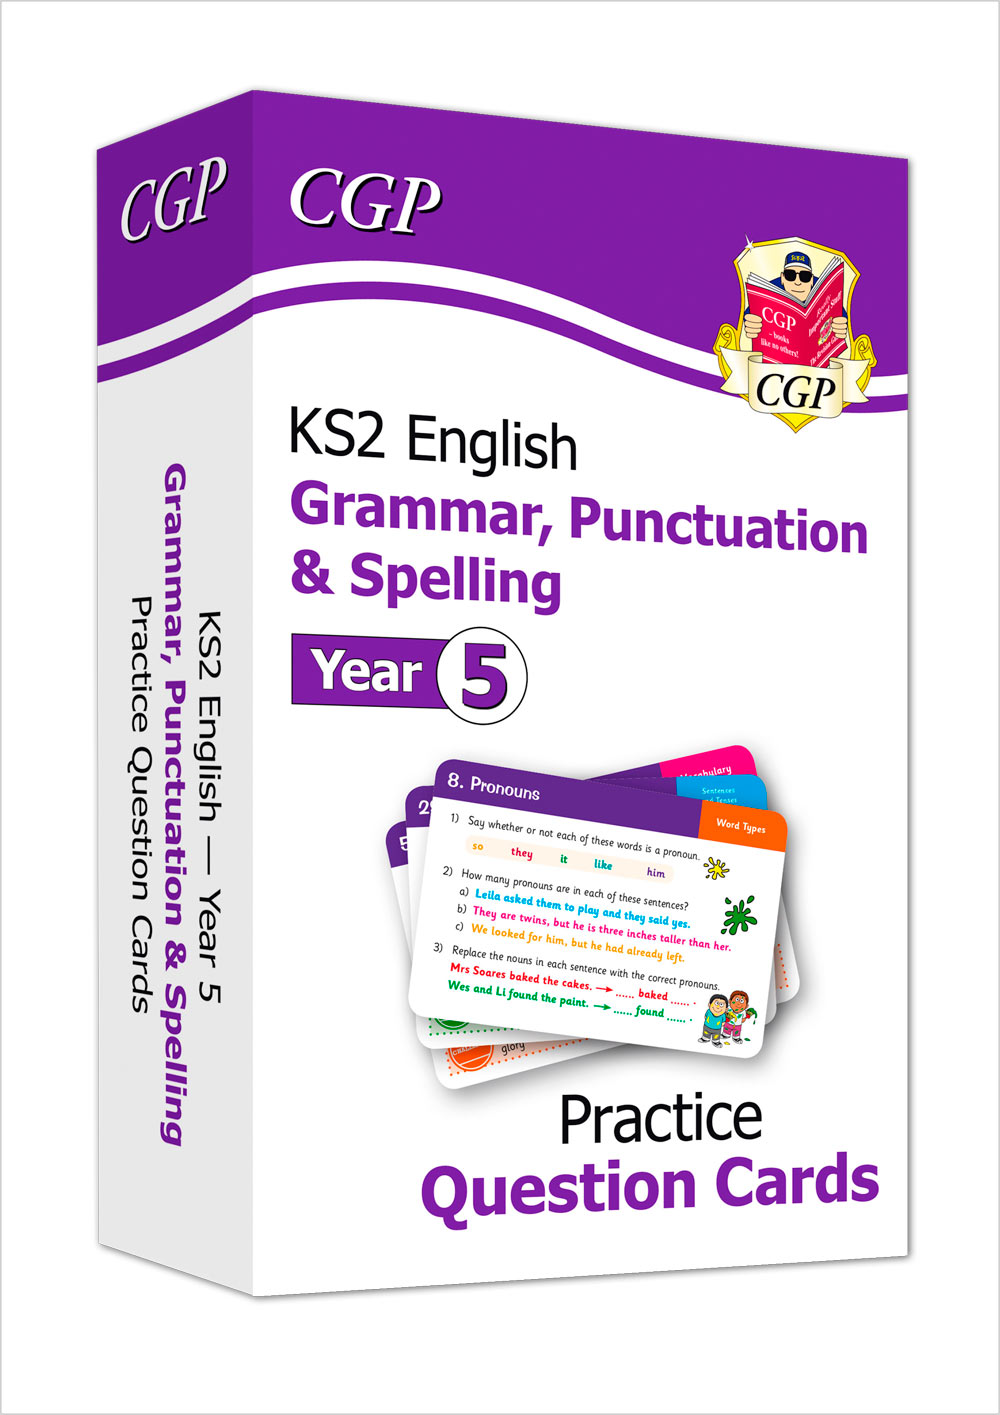 EG5F21 - New KS2 English Practice Question Cards: Grammar, Punctuation & Spelling - Year 5